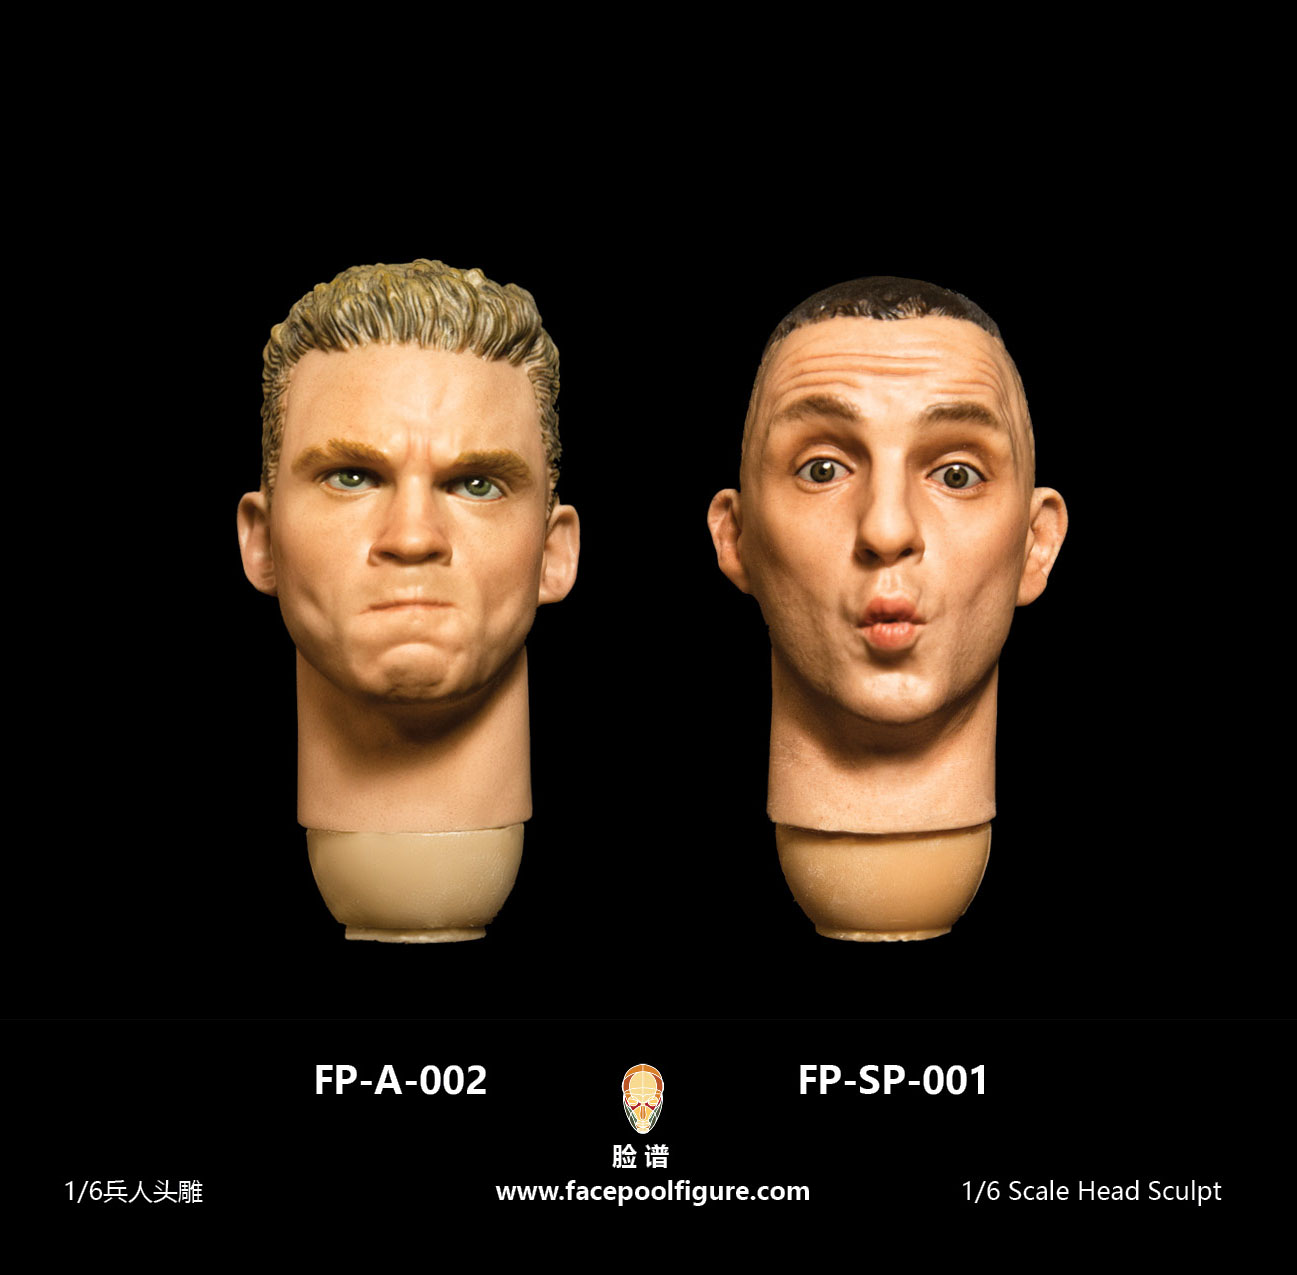 26/06/2018 Facepoolfigure FP-A-002 / FP-SP-001 Male Head Sculpt with Expression